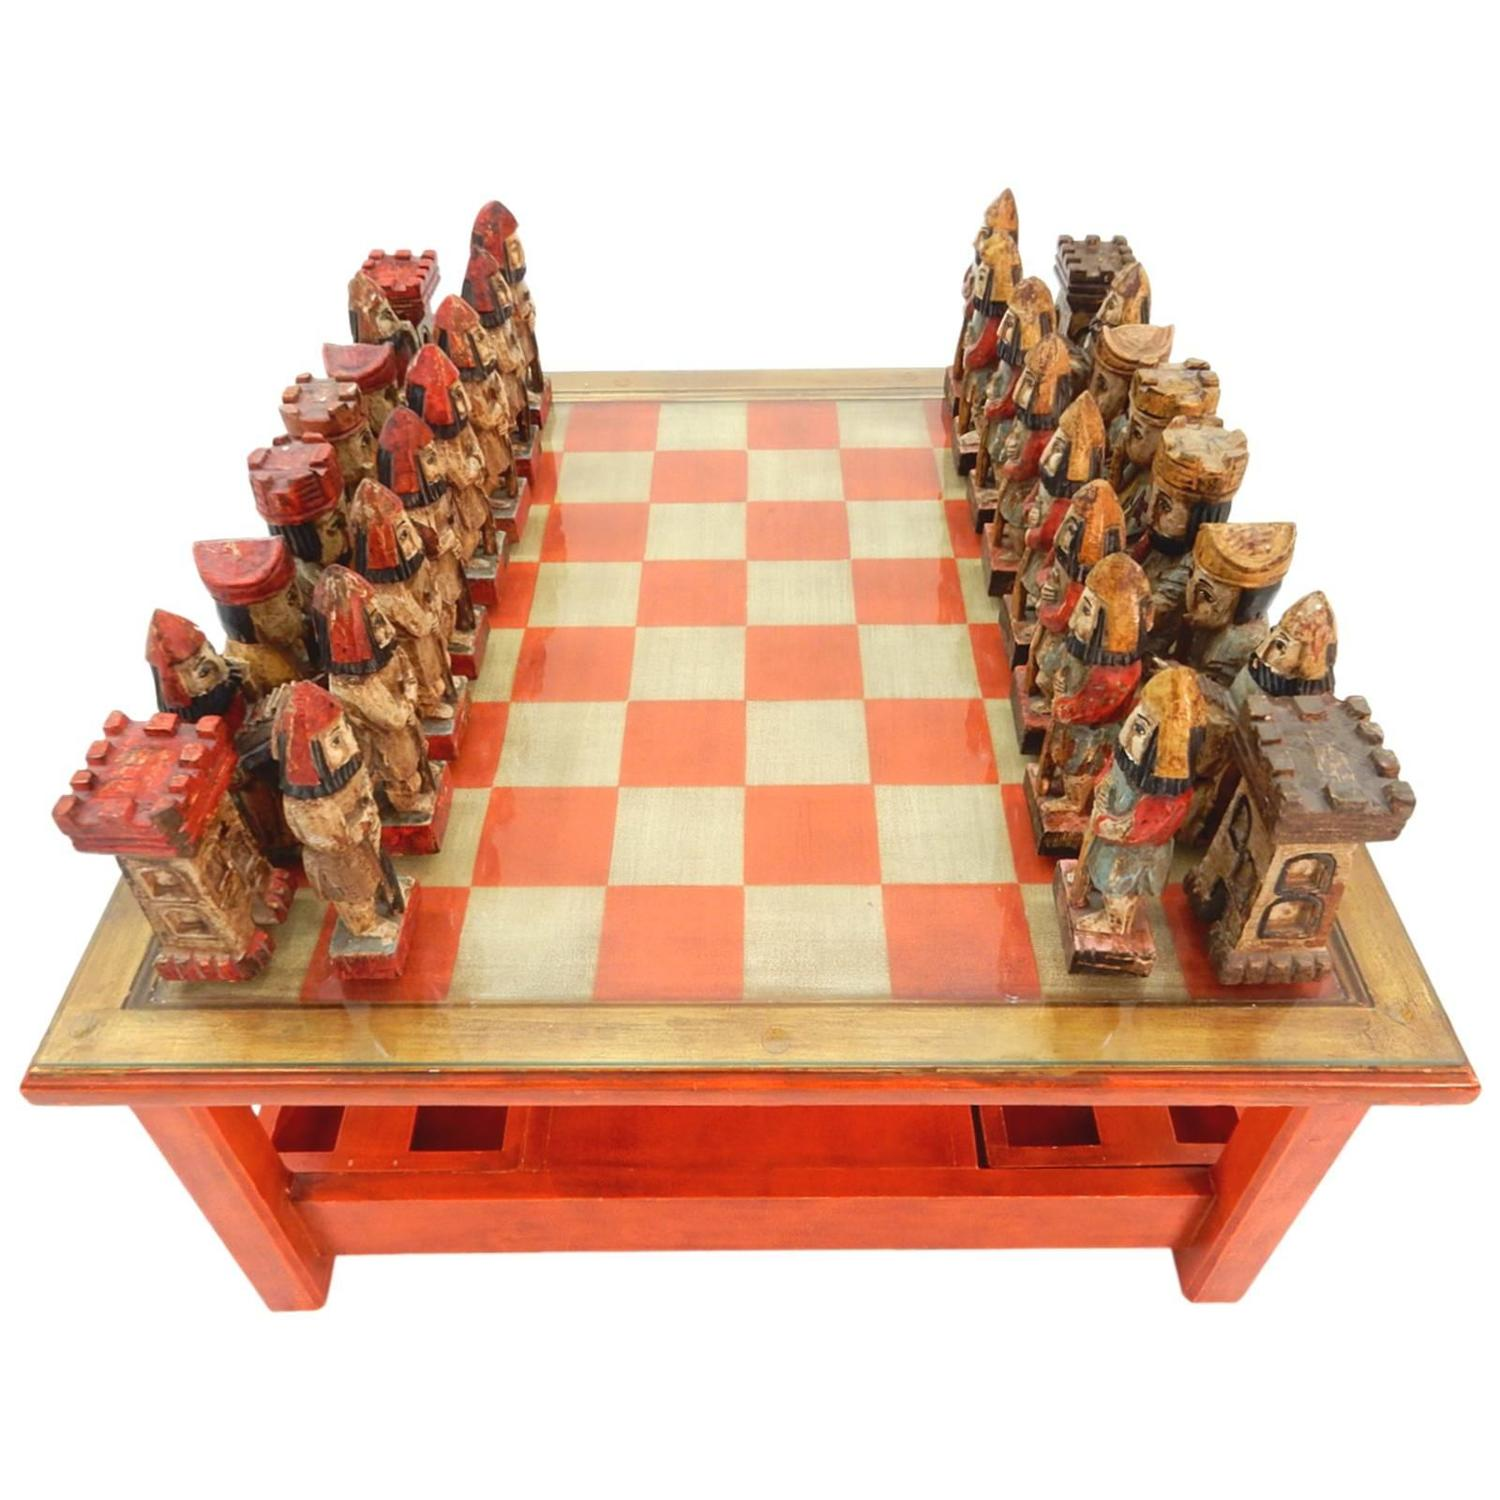 Beau 1950s Italian Large Sculpture Chess Set And Game Coffee Table